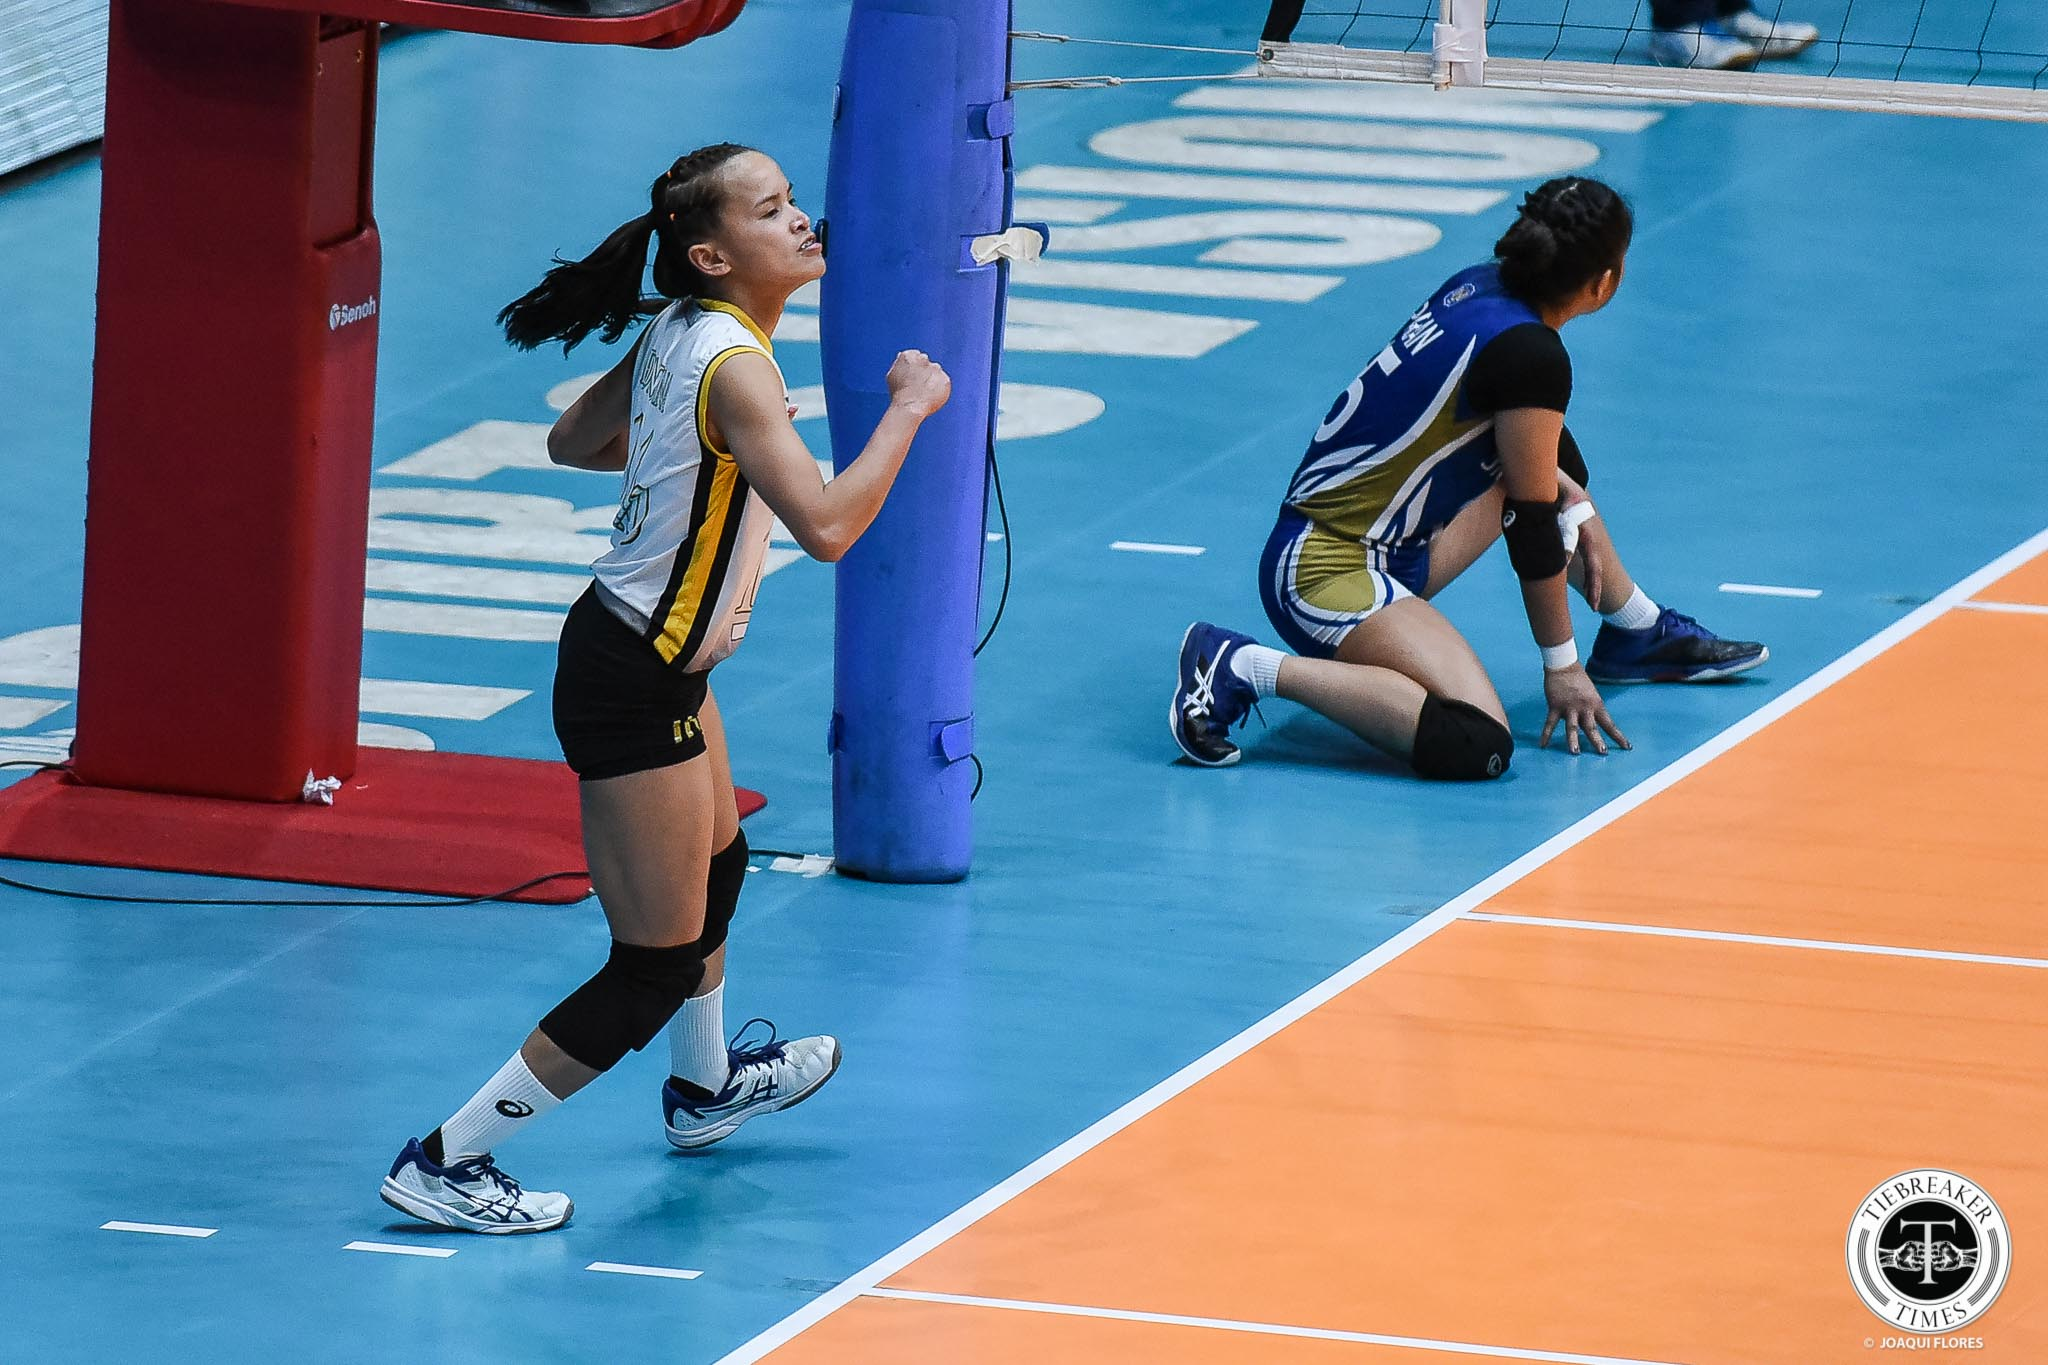 Tiebreaker Times Rondina, UST Tigresses roll into Final Four with emphatic win over NU News NU UAAP UST Volleyball  UST Women's Volleyball UAAP Season 81 Women's Volleyball UAAP Season 81 Sisi Rondina Rica Rivera Princess Robles NU Women's Volleyball Norman Miguel Kungfu Reyes Ivy Lacsina Eya Laure Alina Bicar